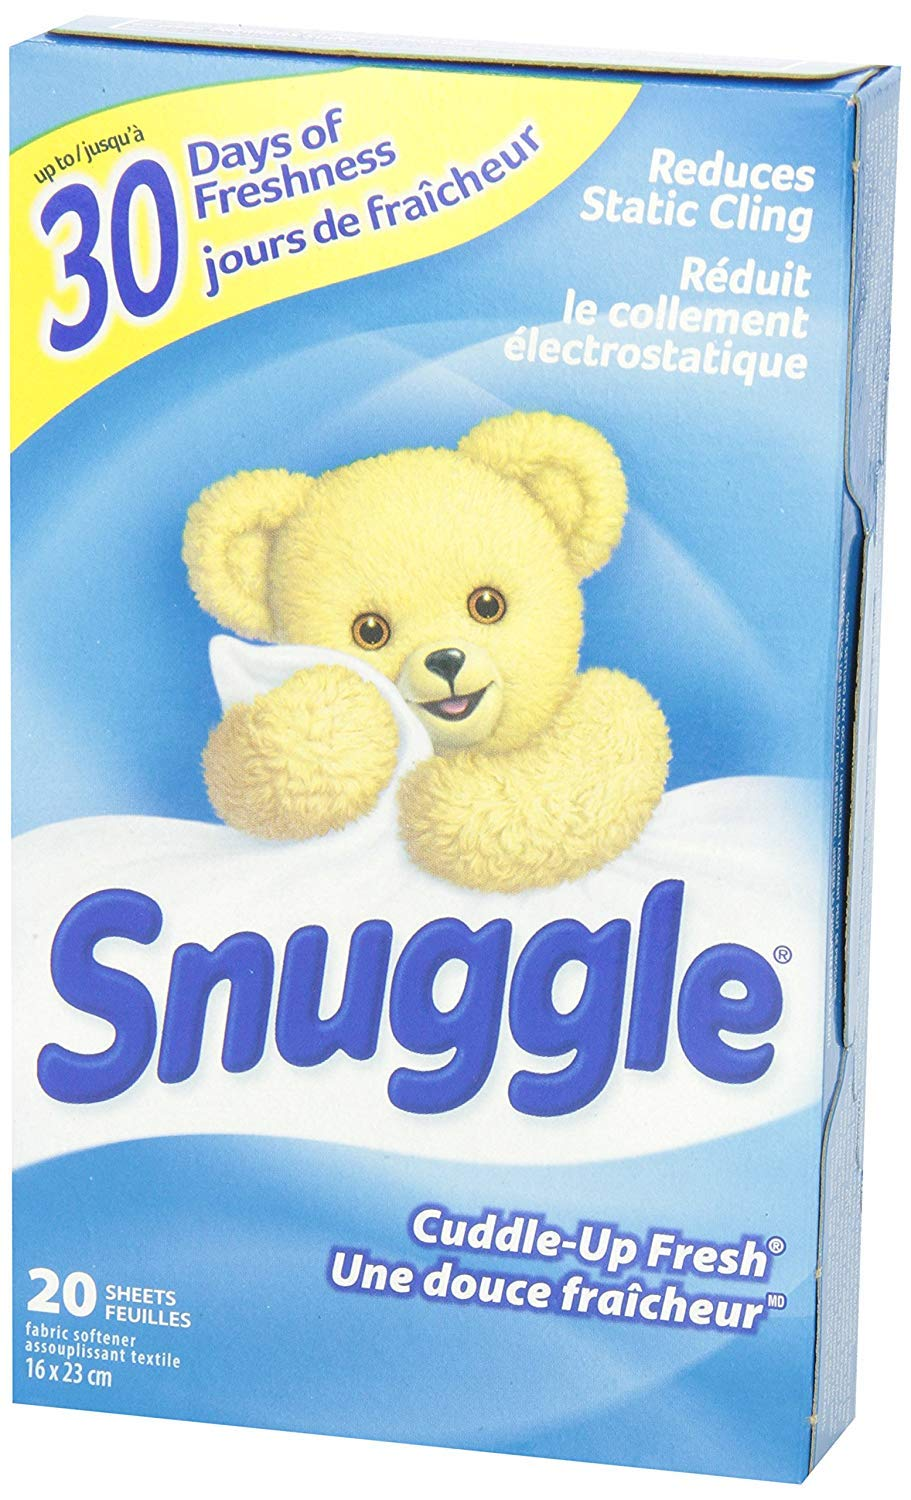 Snuggle Fabric Softner Dryer Sheets, Cuddle Up Fresh Scent, Reduces Static Cling - 480 Count by Snuggle (Image #6)